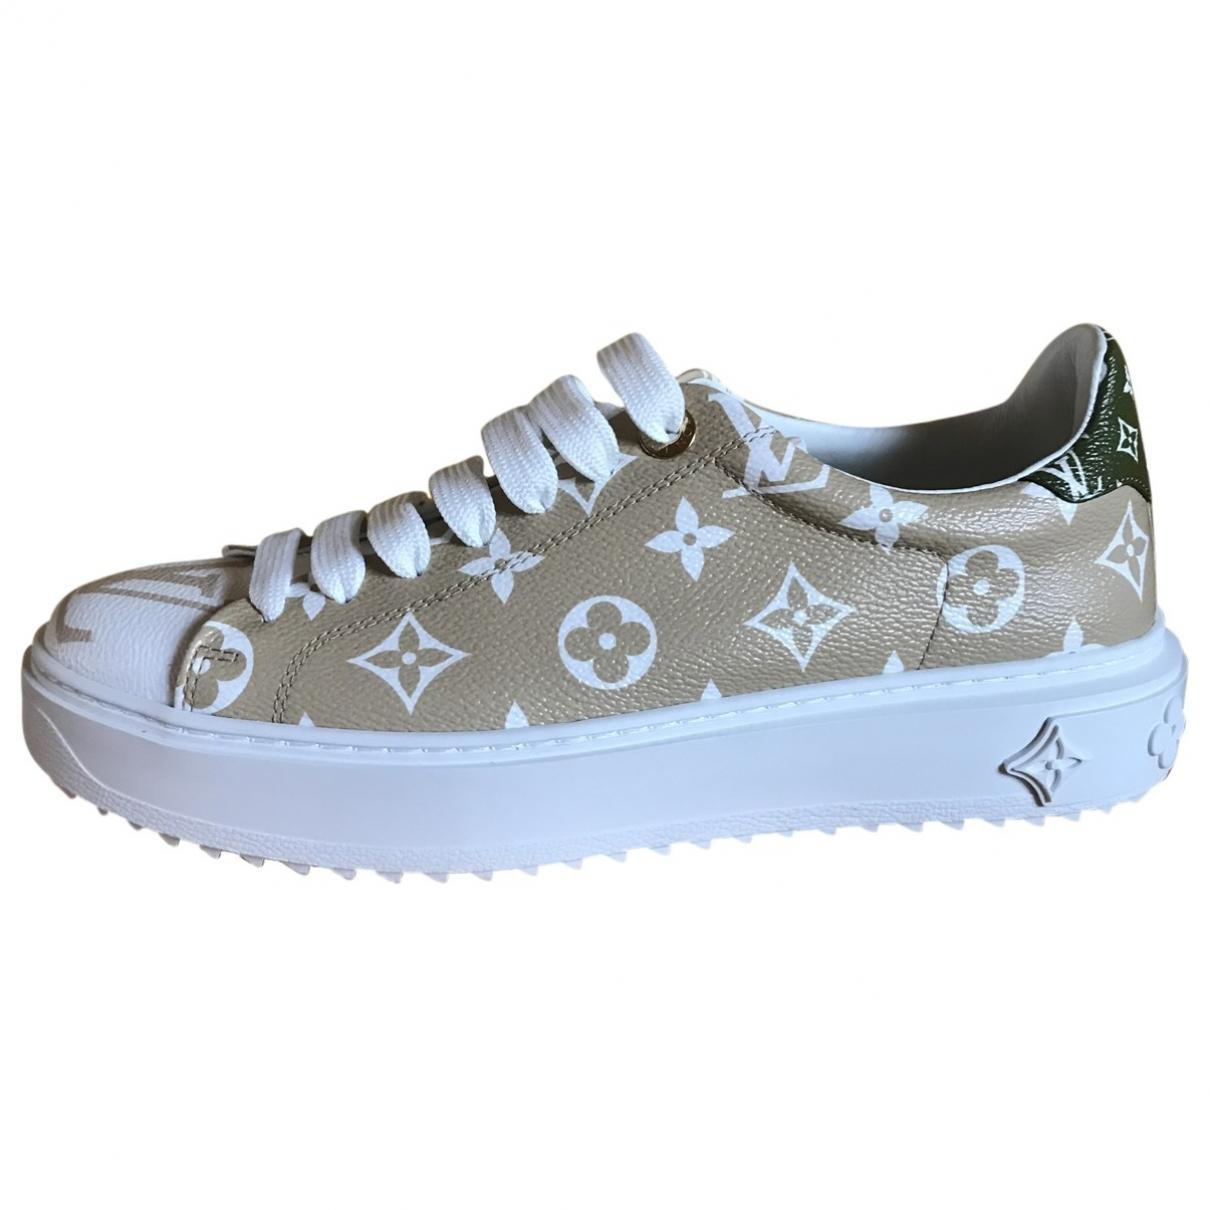 0551908bebe8 Lyst - Louis Vuitton Timeout Beige Leather Trainers in Natural